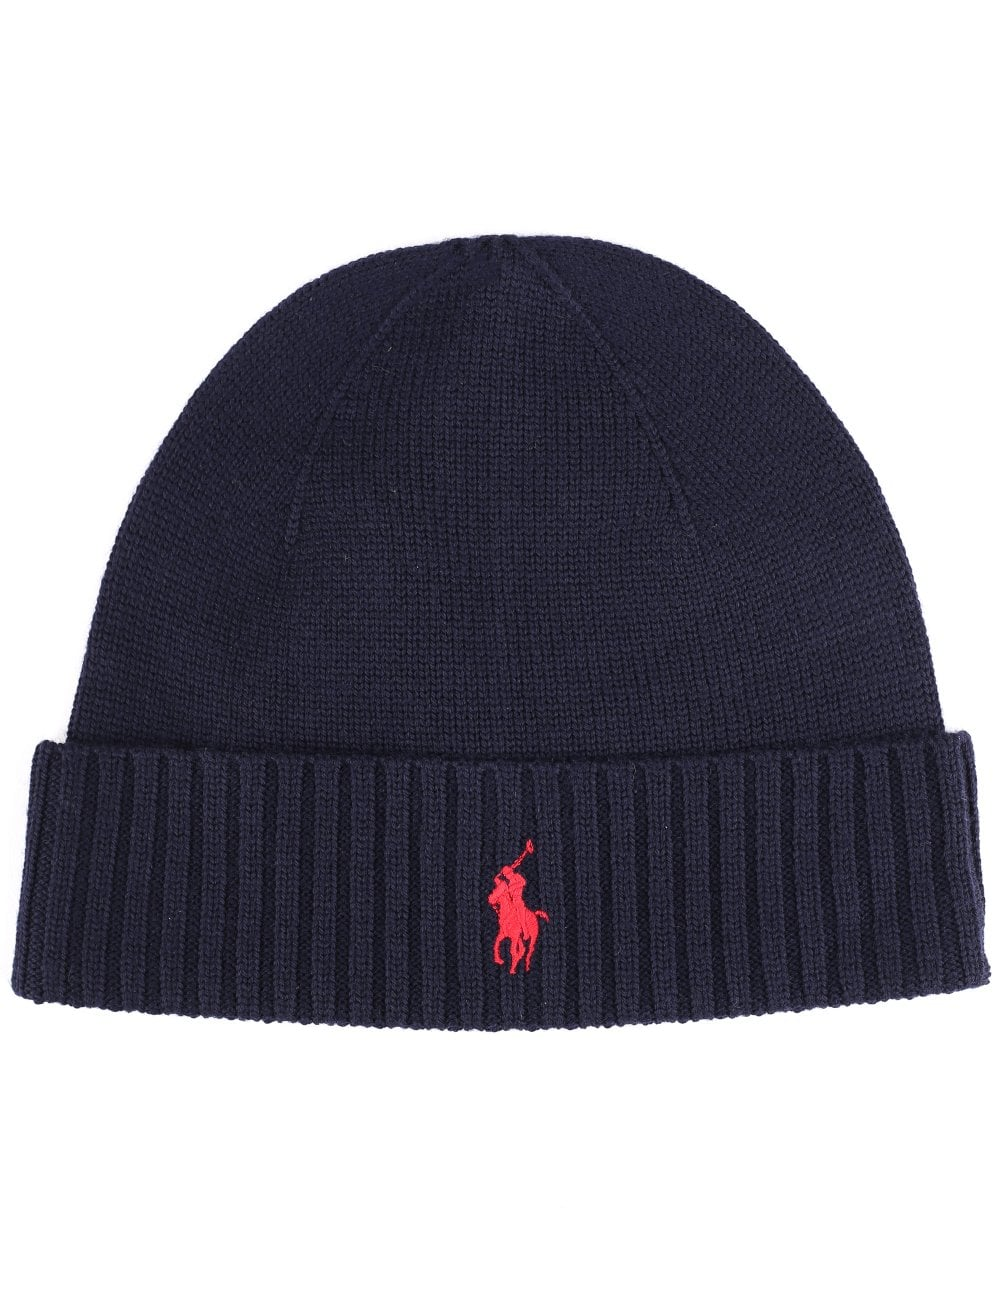 Polo Ralph Lauren Men s FO Beanie Hat 1c42d016f79